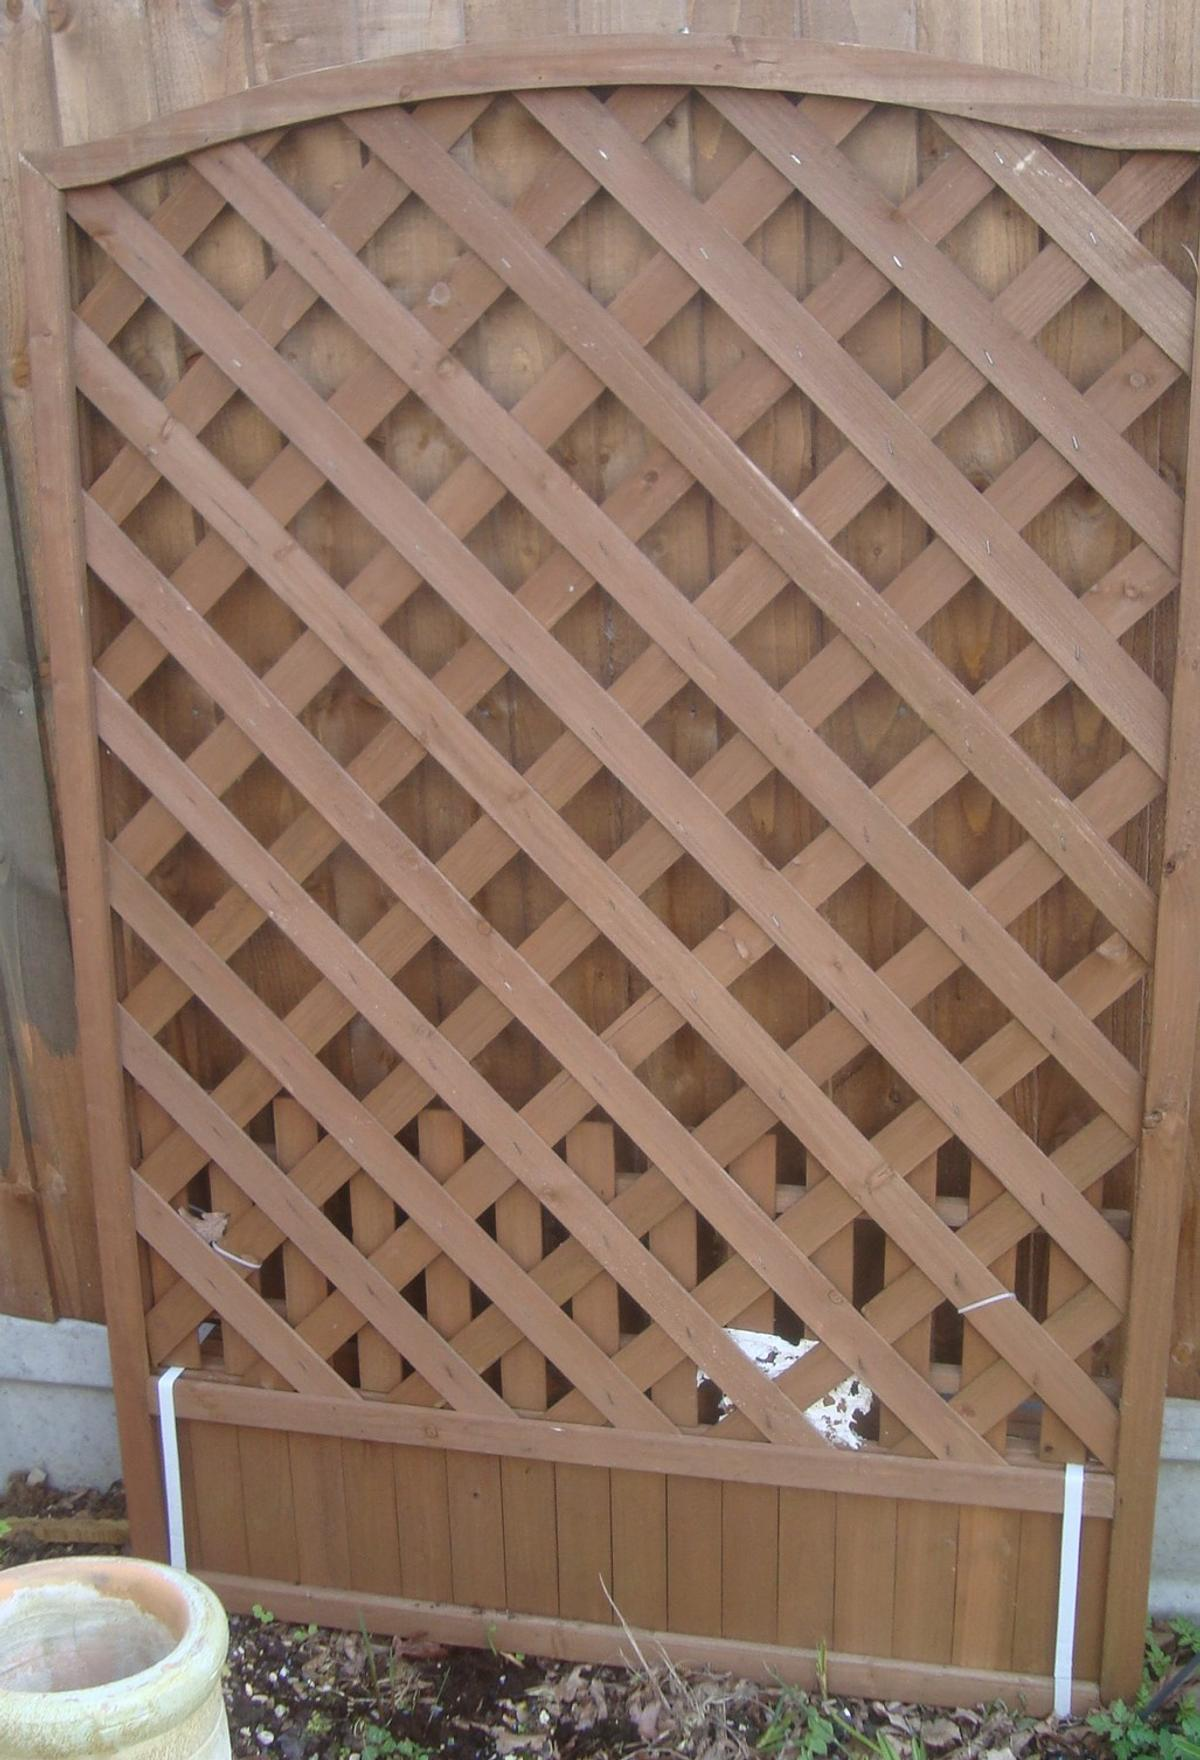 New Large Garden Lattice Wooden Planter